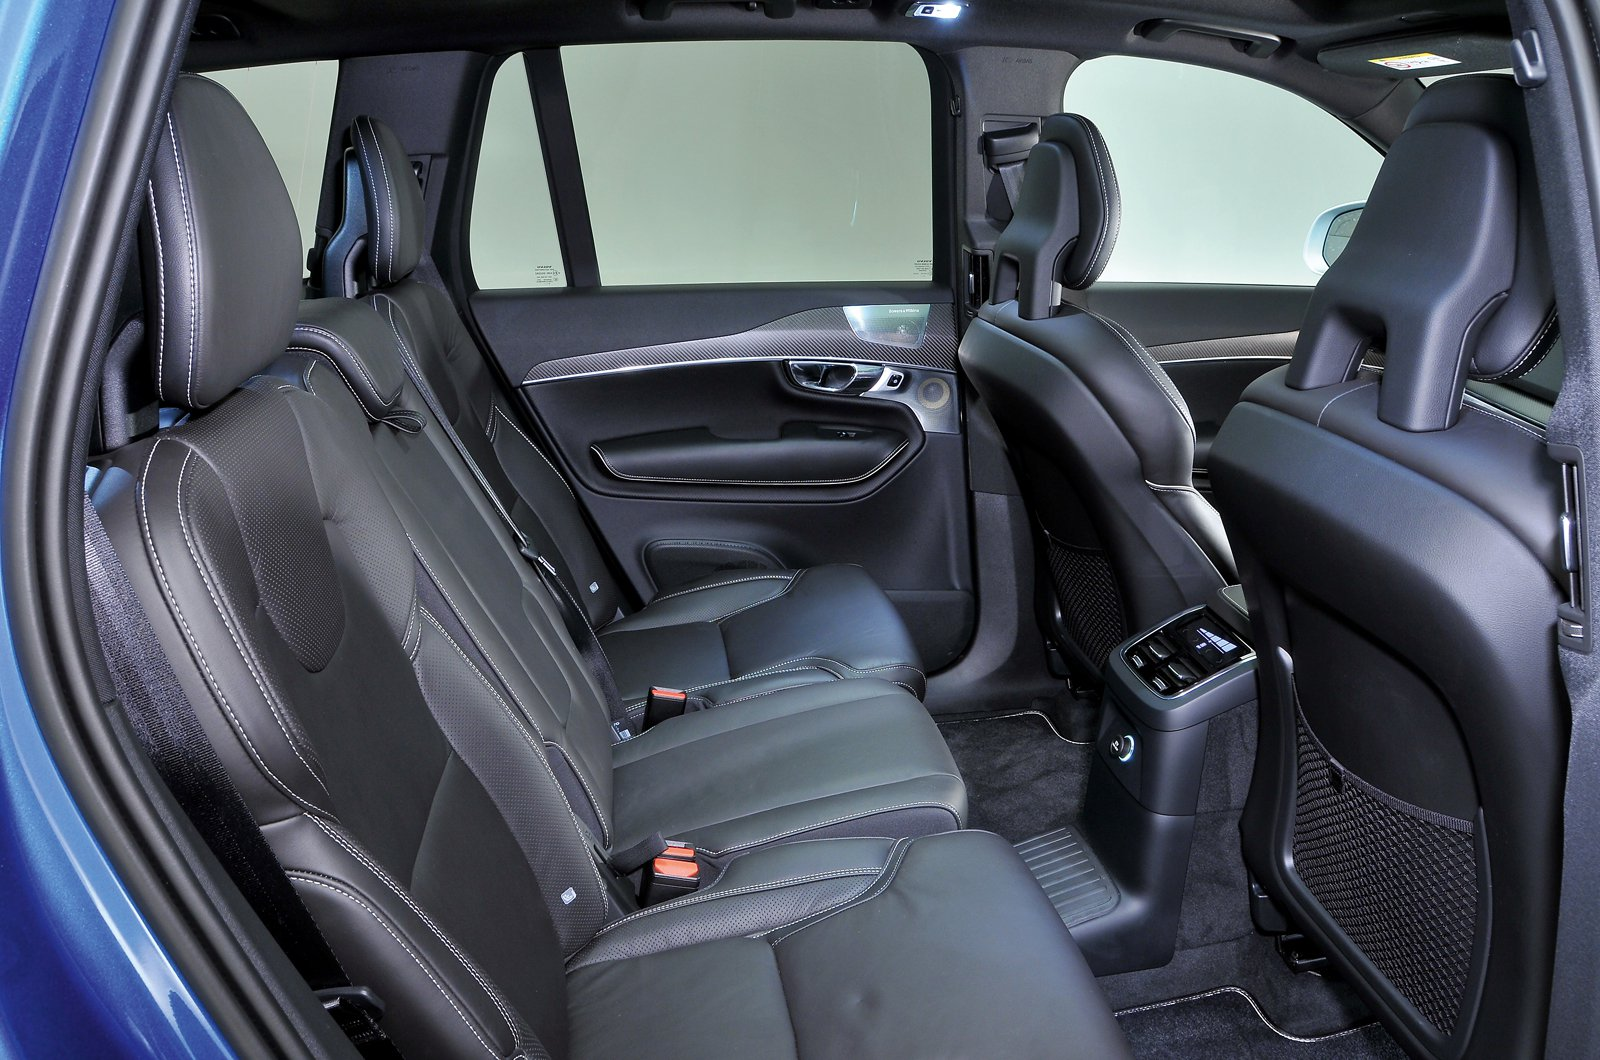 Volvo Xc90 Boot Space Size Seats What Car